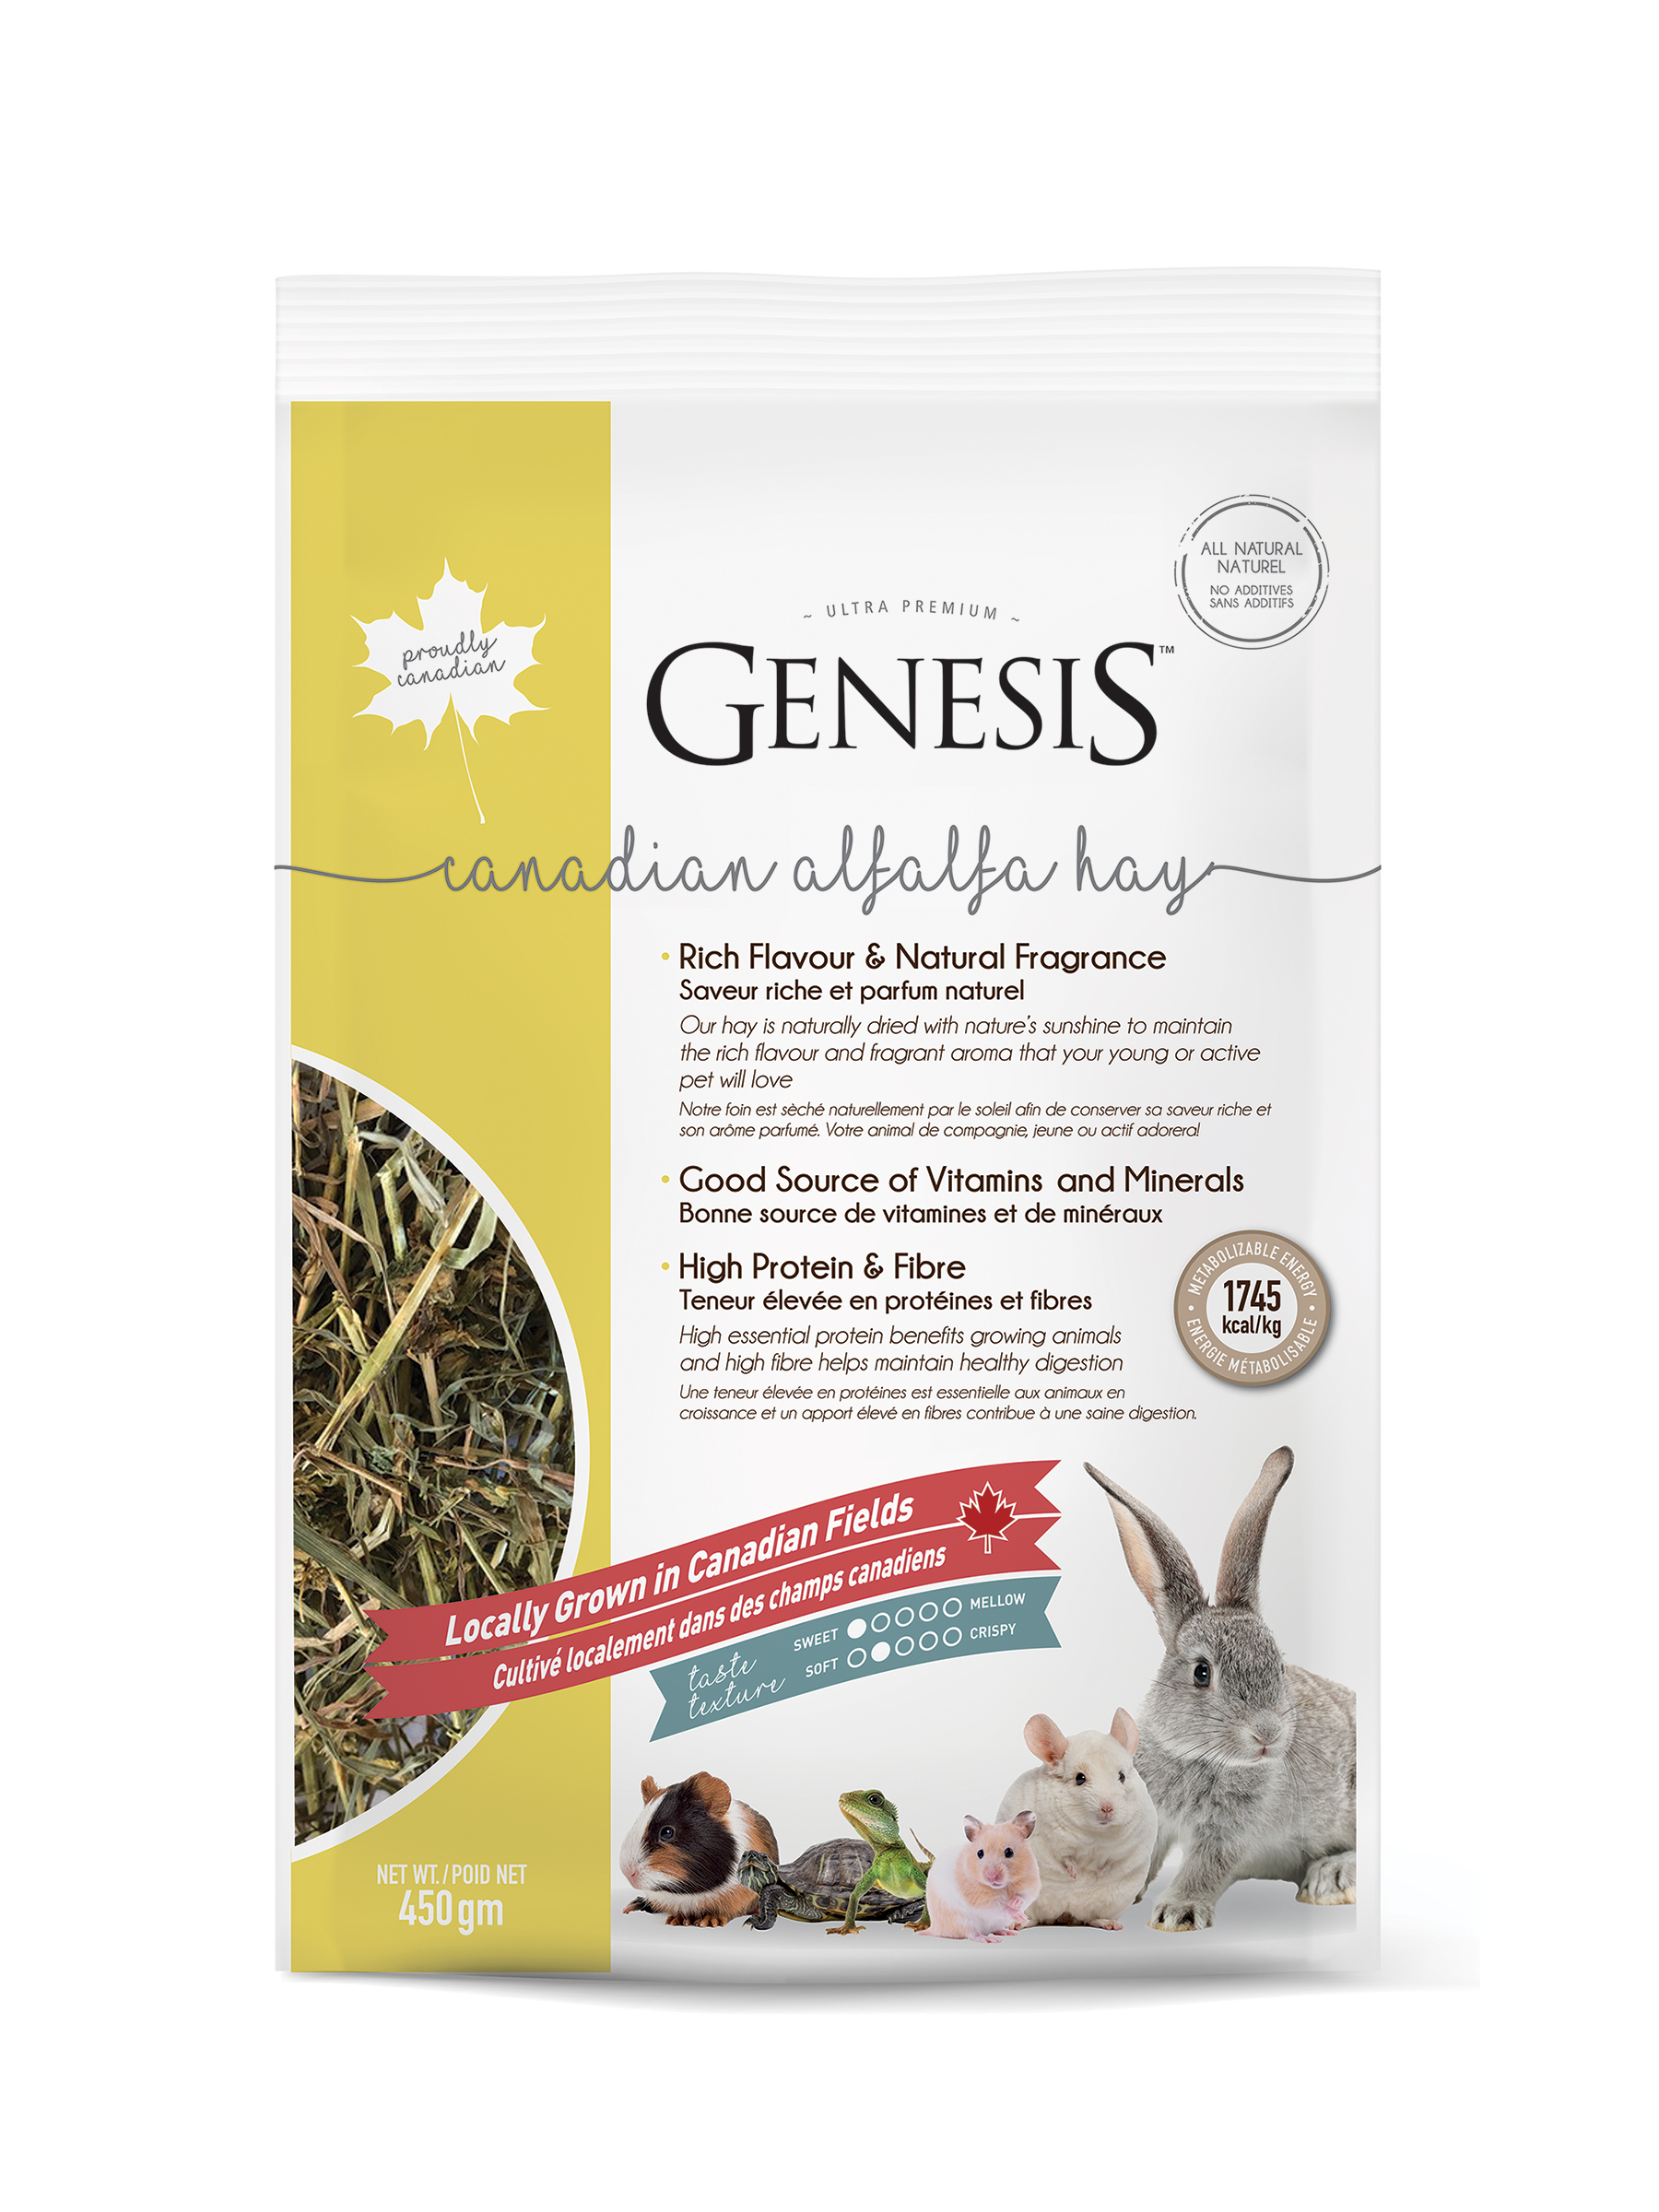 Genesis 100% Canadian Alfalfa Hay - is packed full of nutrition with high protein, high fibre and concentrated sources of essential vitamins and minerals.